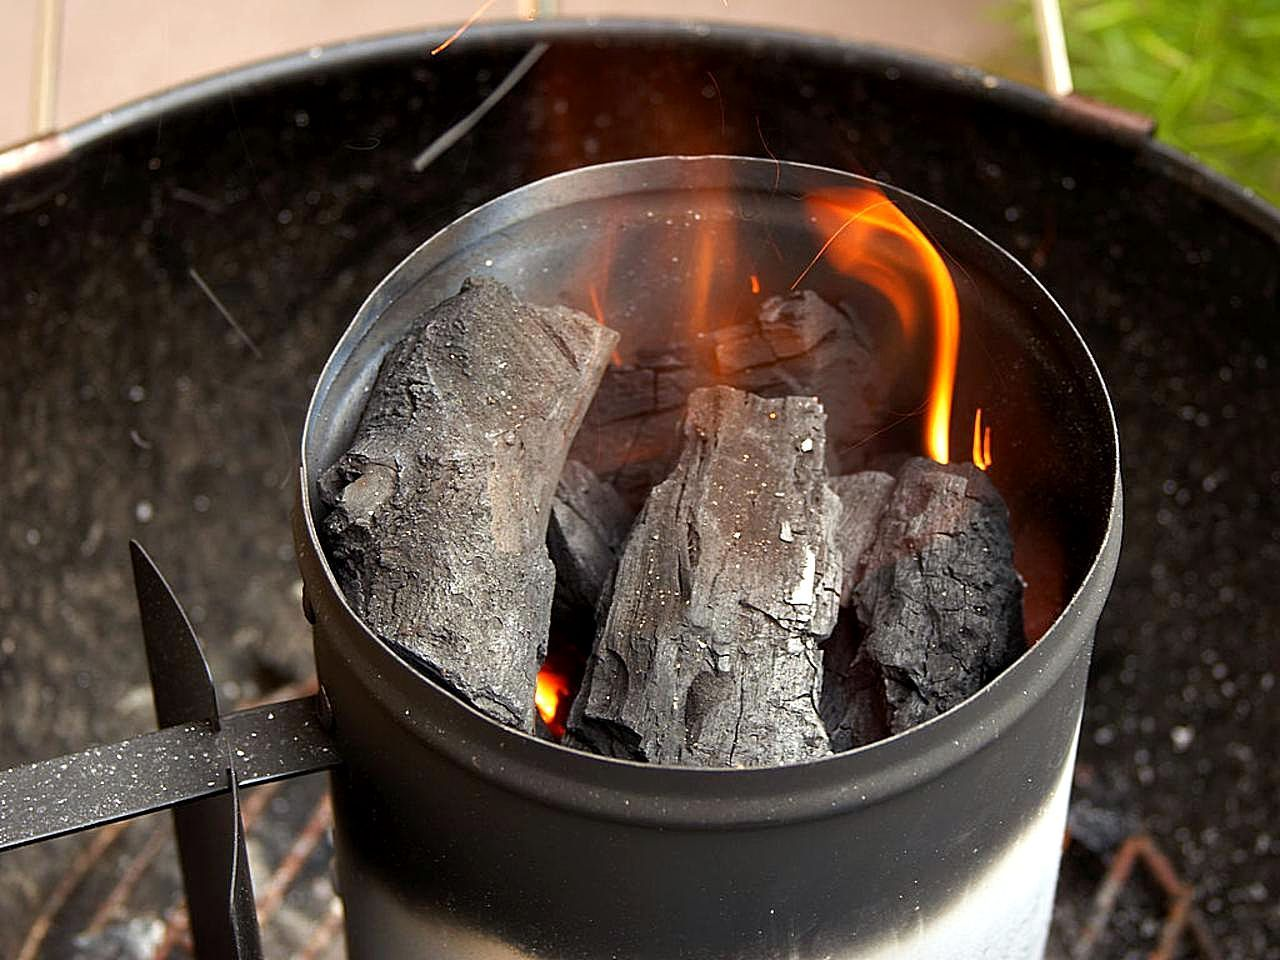 How To Make A Homemade Charcoal Chimney Starter Thrifty Outdoors Man Charcoal Chimneys Homemade Fire Starters Homemade